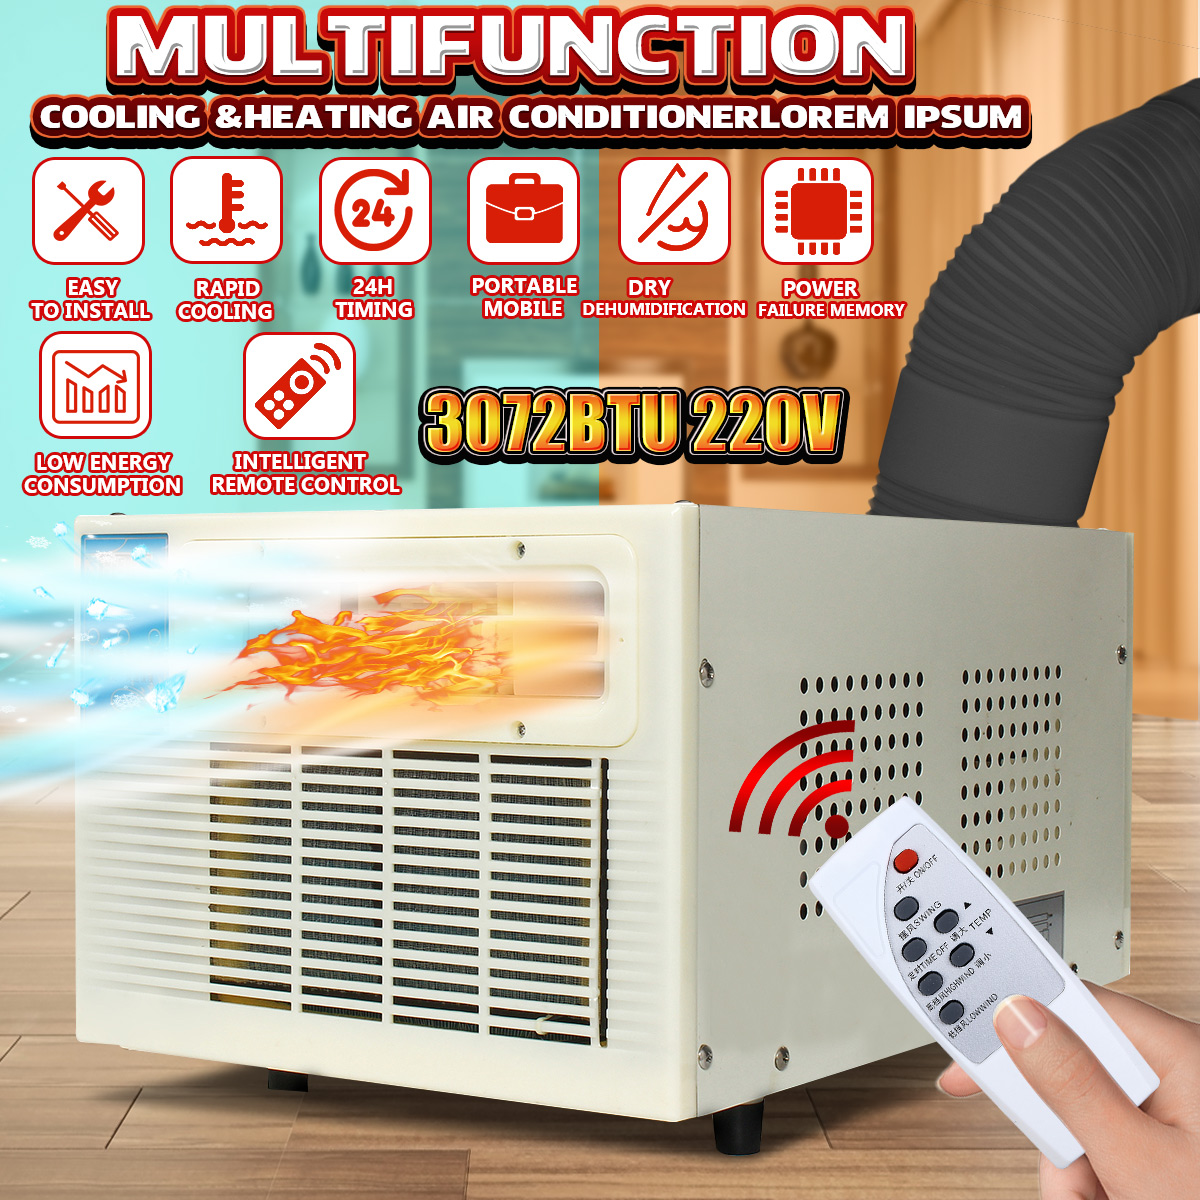 Newest 900W 3072 BTU Portable Heater Air Conditioner Window Air Conditioner Cooling Heating Cold/Heat  Dehumidification 220V